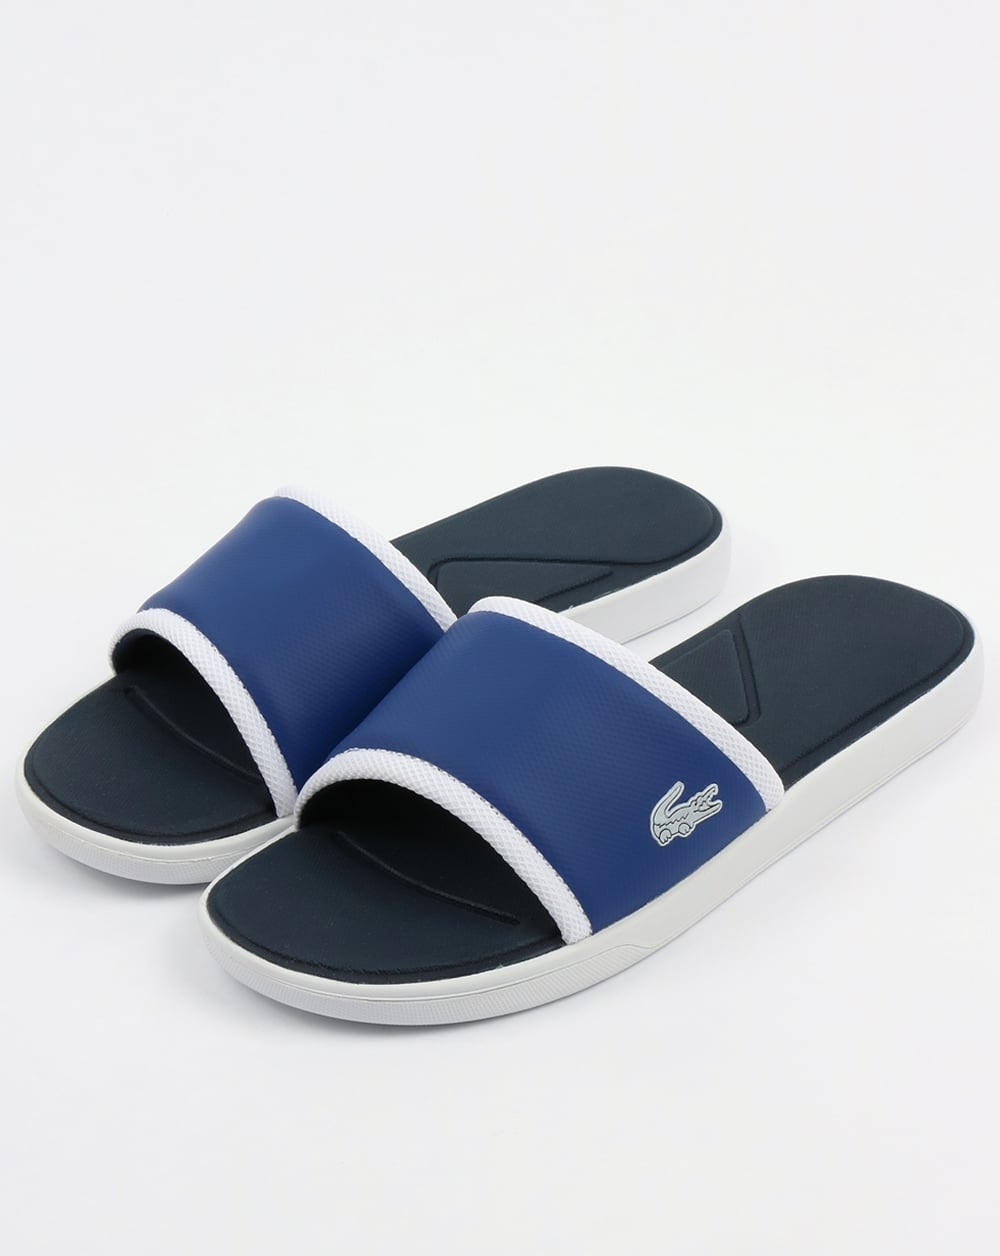 aa5601fc09209 Lacoste Lacoste Footwear L.30 Sliders Dark Blue